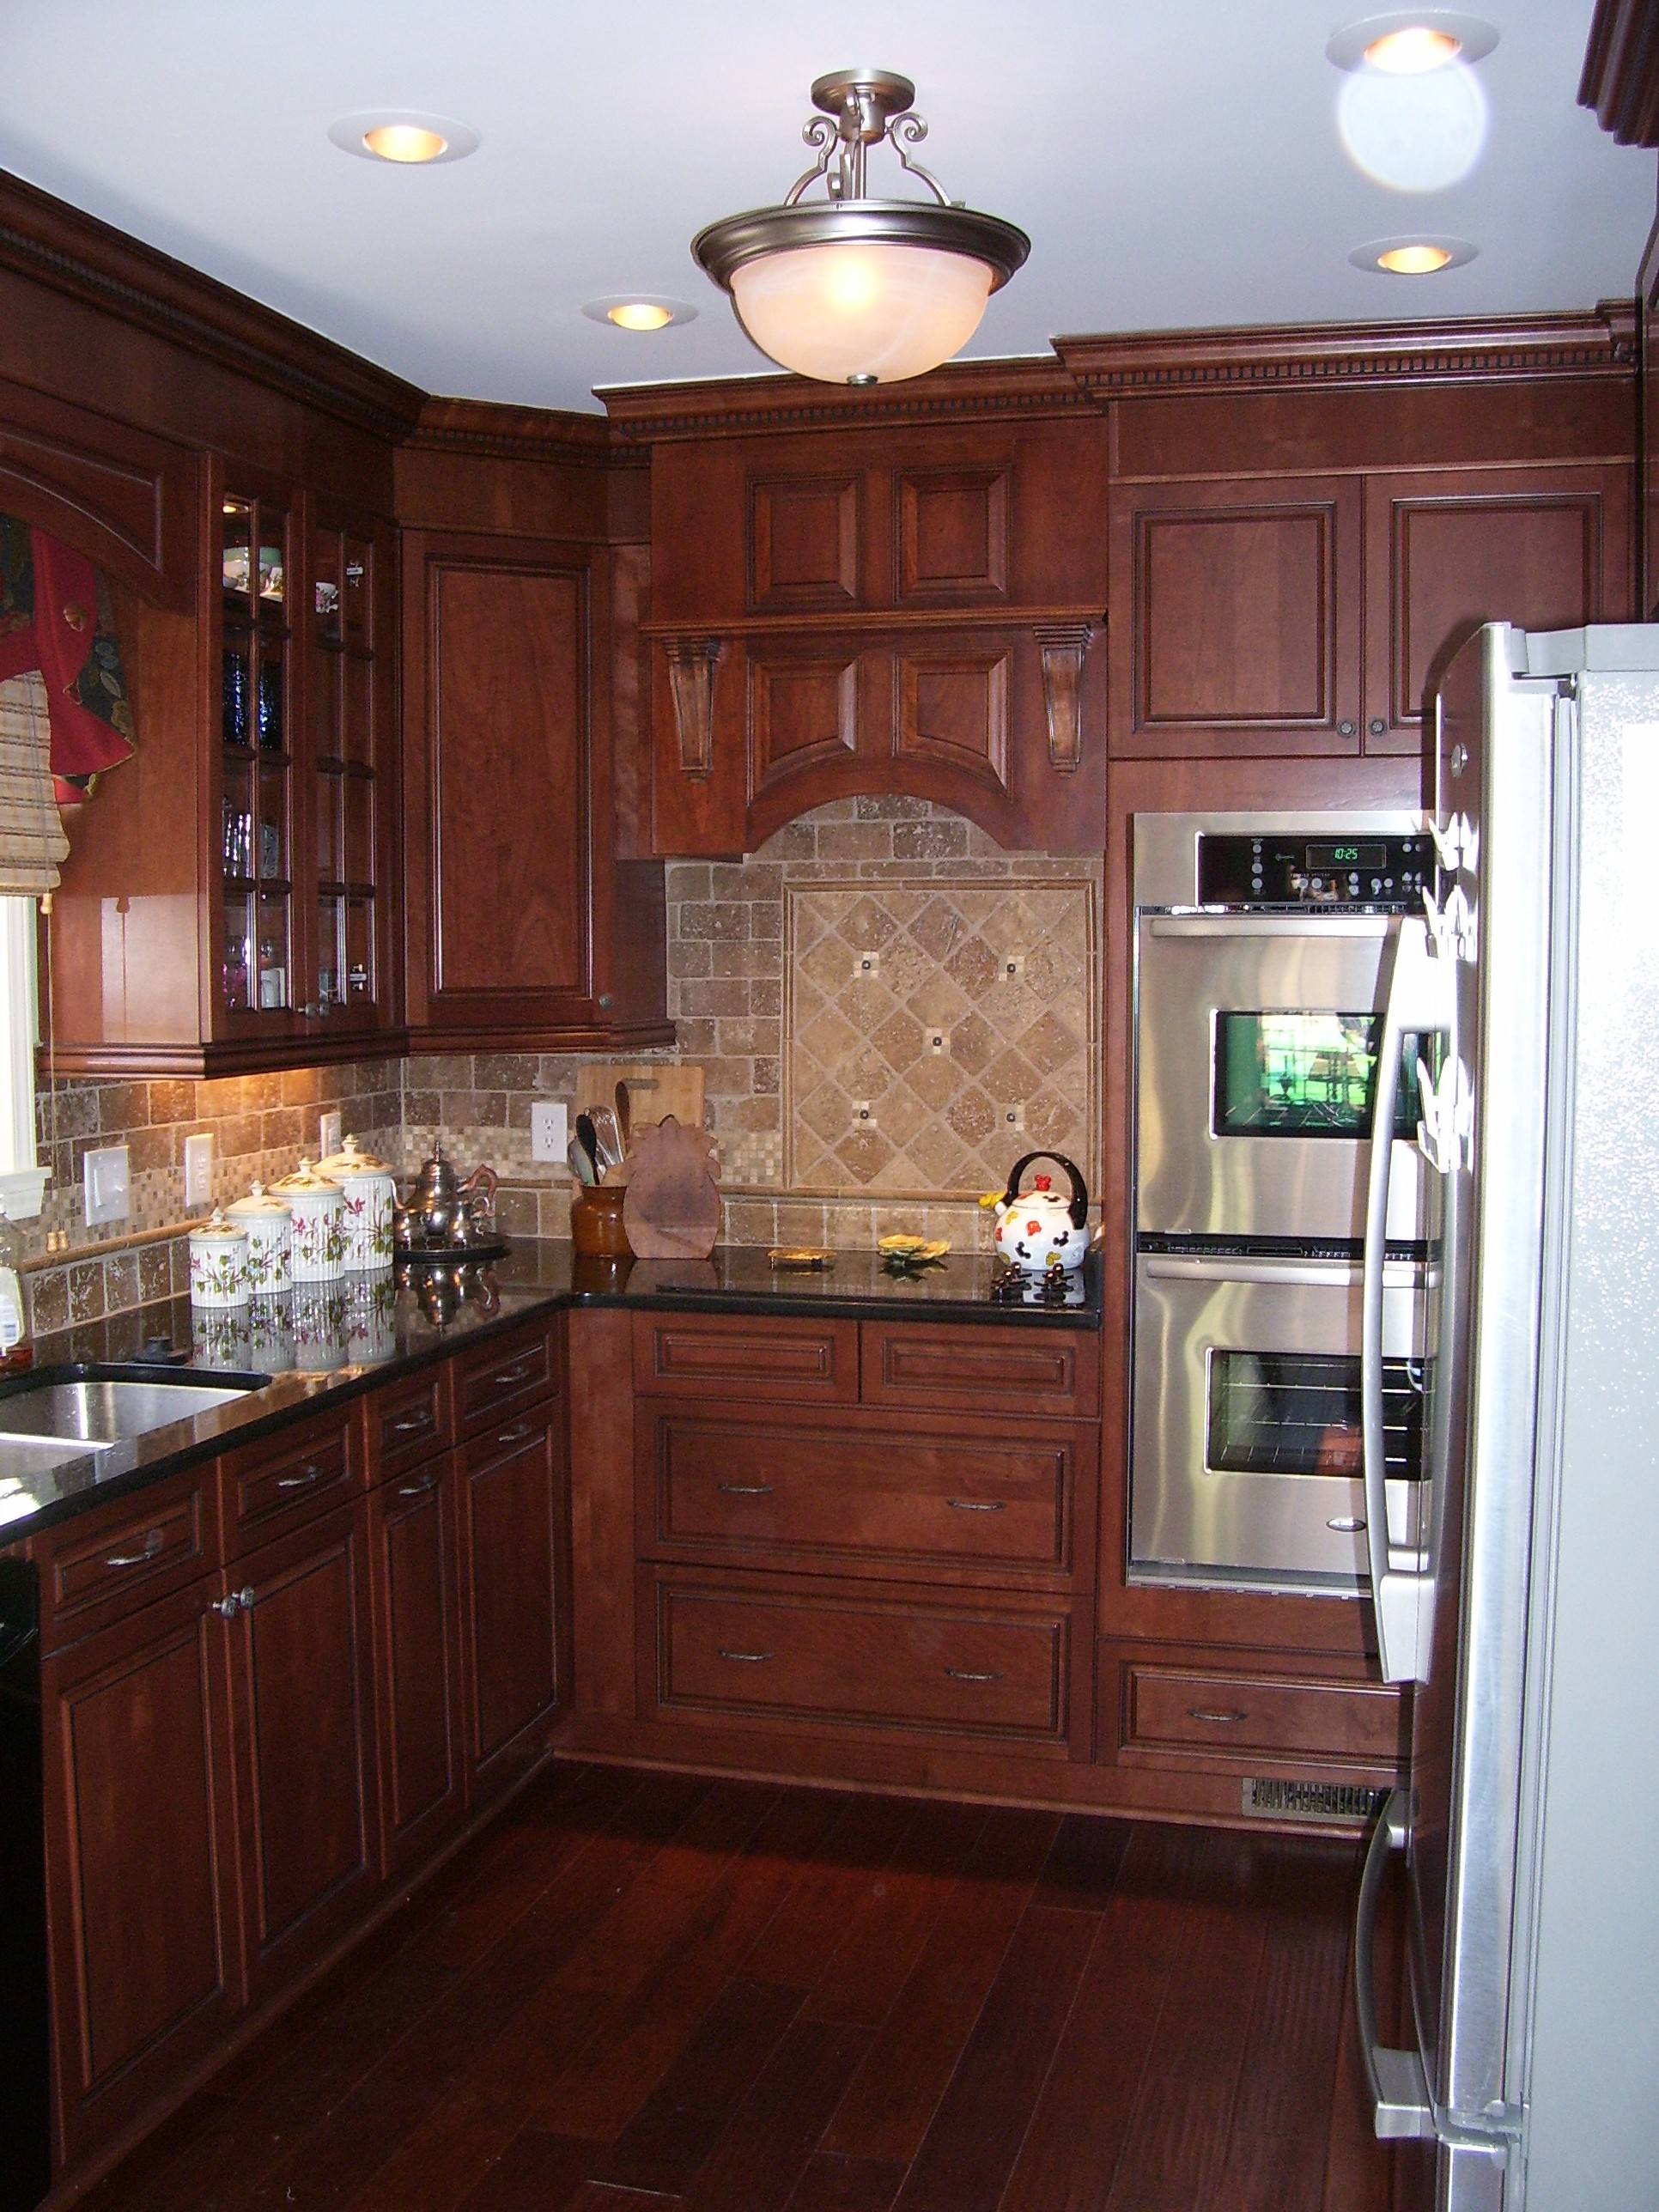 Norcraft Kitchen Cabinets Services Carolina Home Design Construction Llc